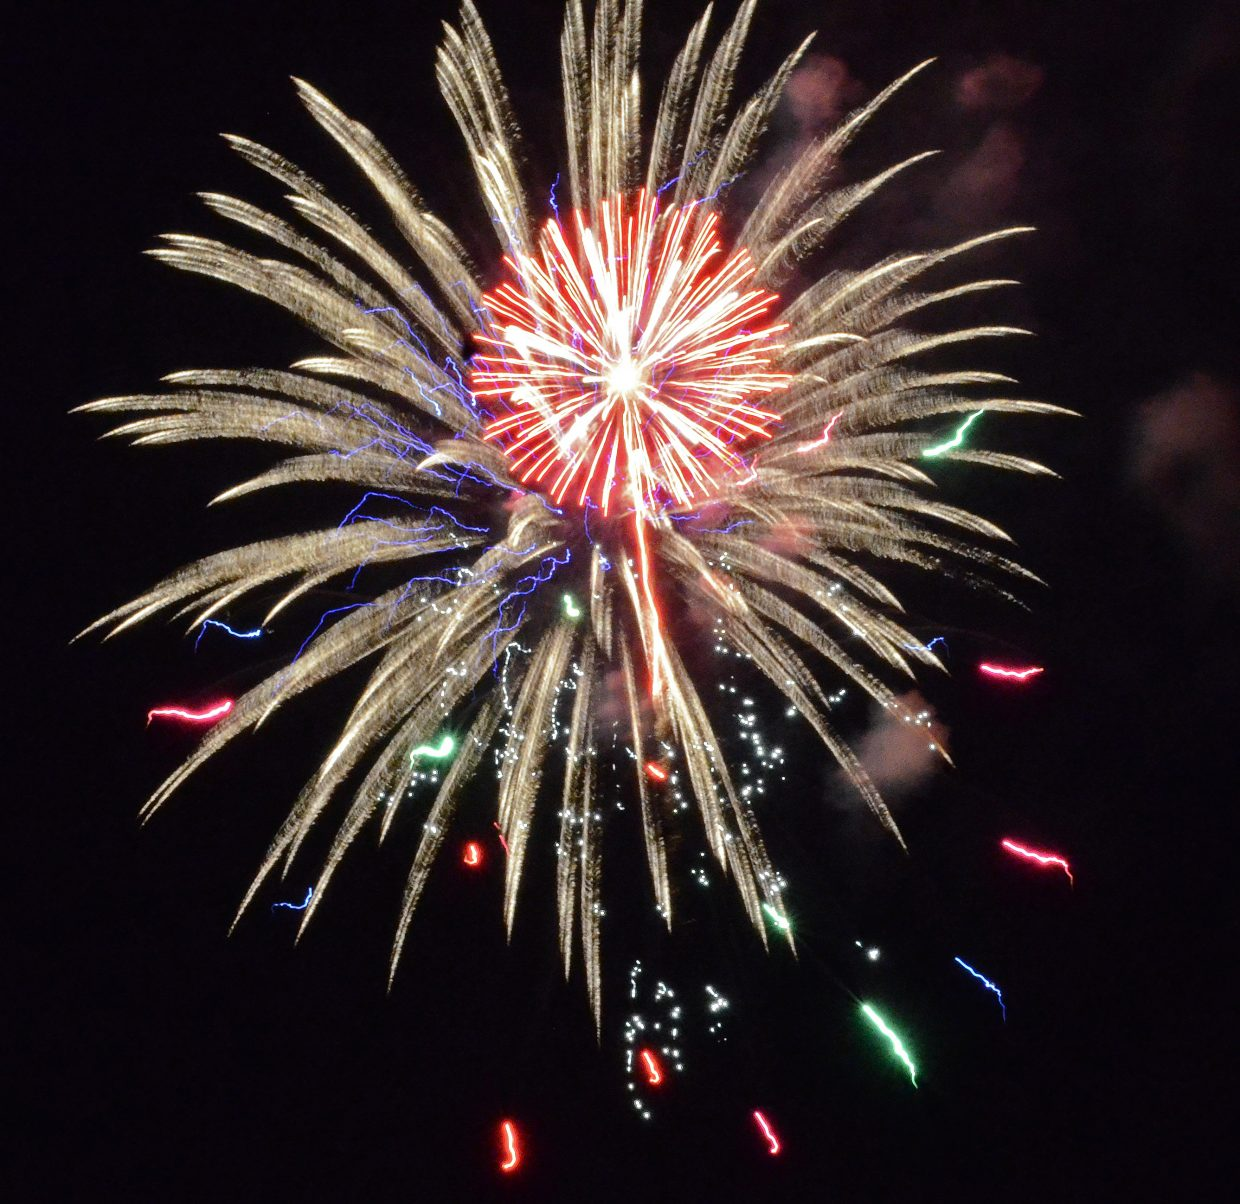 Fireworks light up the night sky in Craig